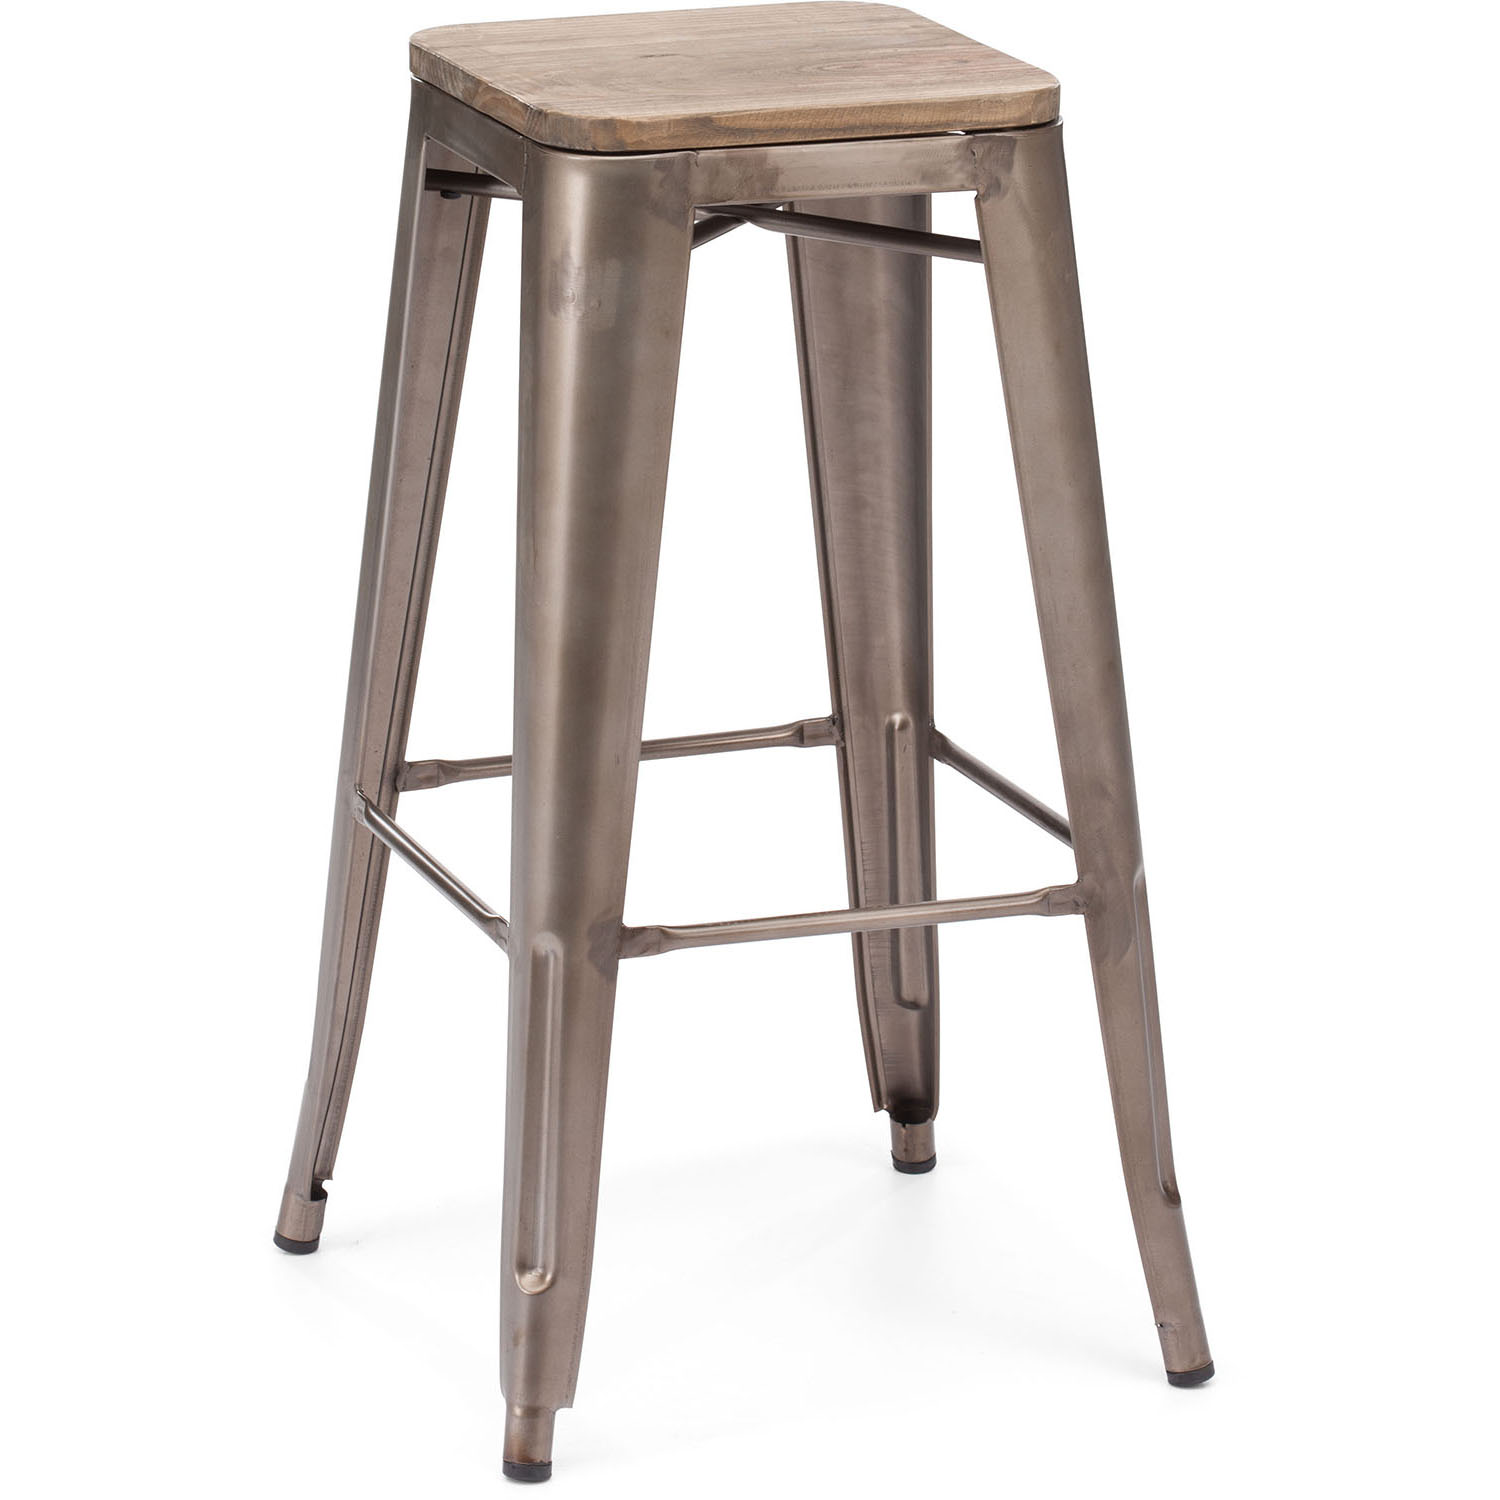 Special Era Marius Barstools  Product Photo